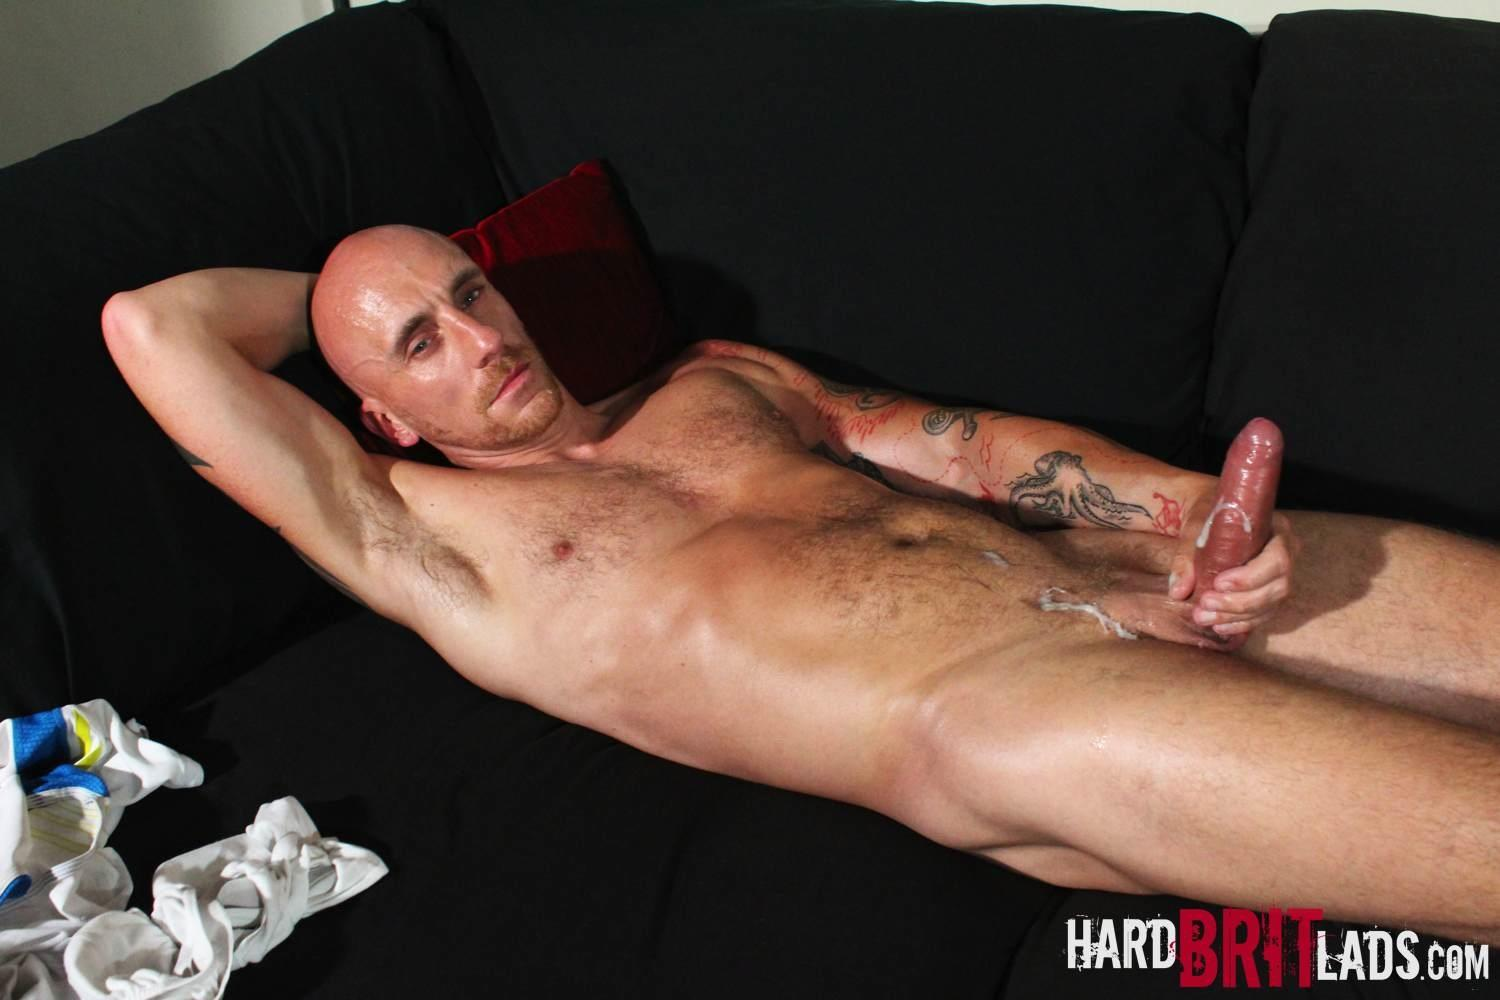 Hard-Brit-Lads-Sam-Porter-British-Muscle-Hunk-With-A-big-Uncut-cock-Amateur-Gay-Porn-26 Tatted Muscle British Hunk Sam Porter Jerking His Big Uncut Cock